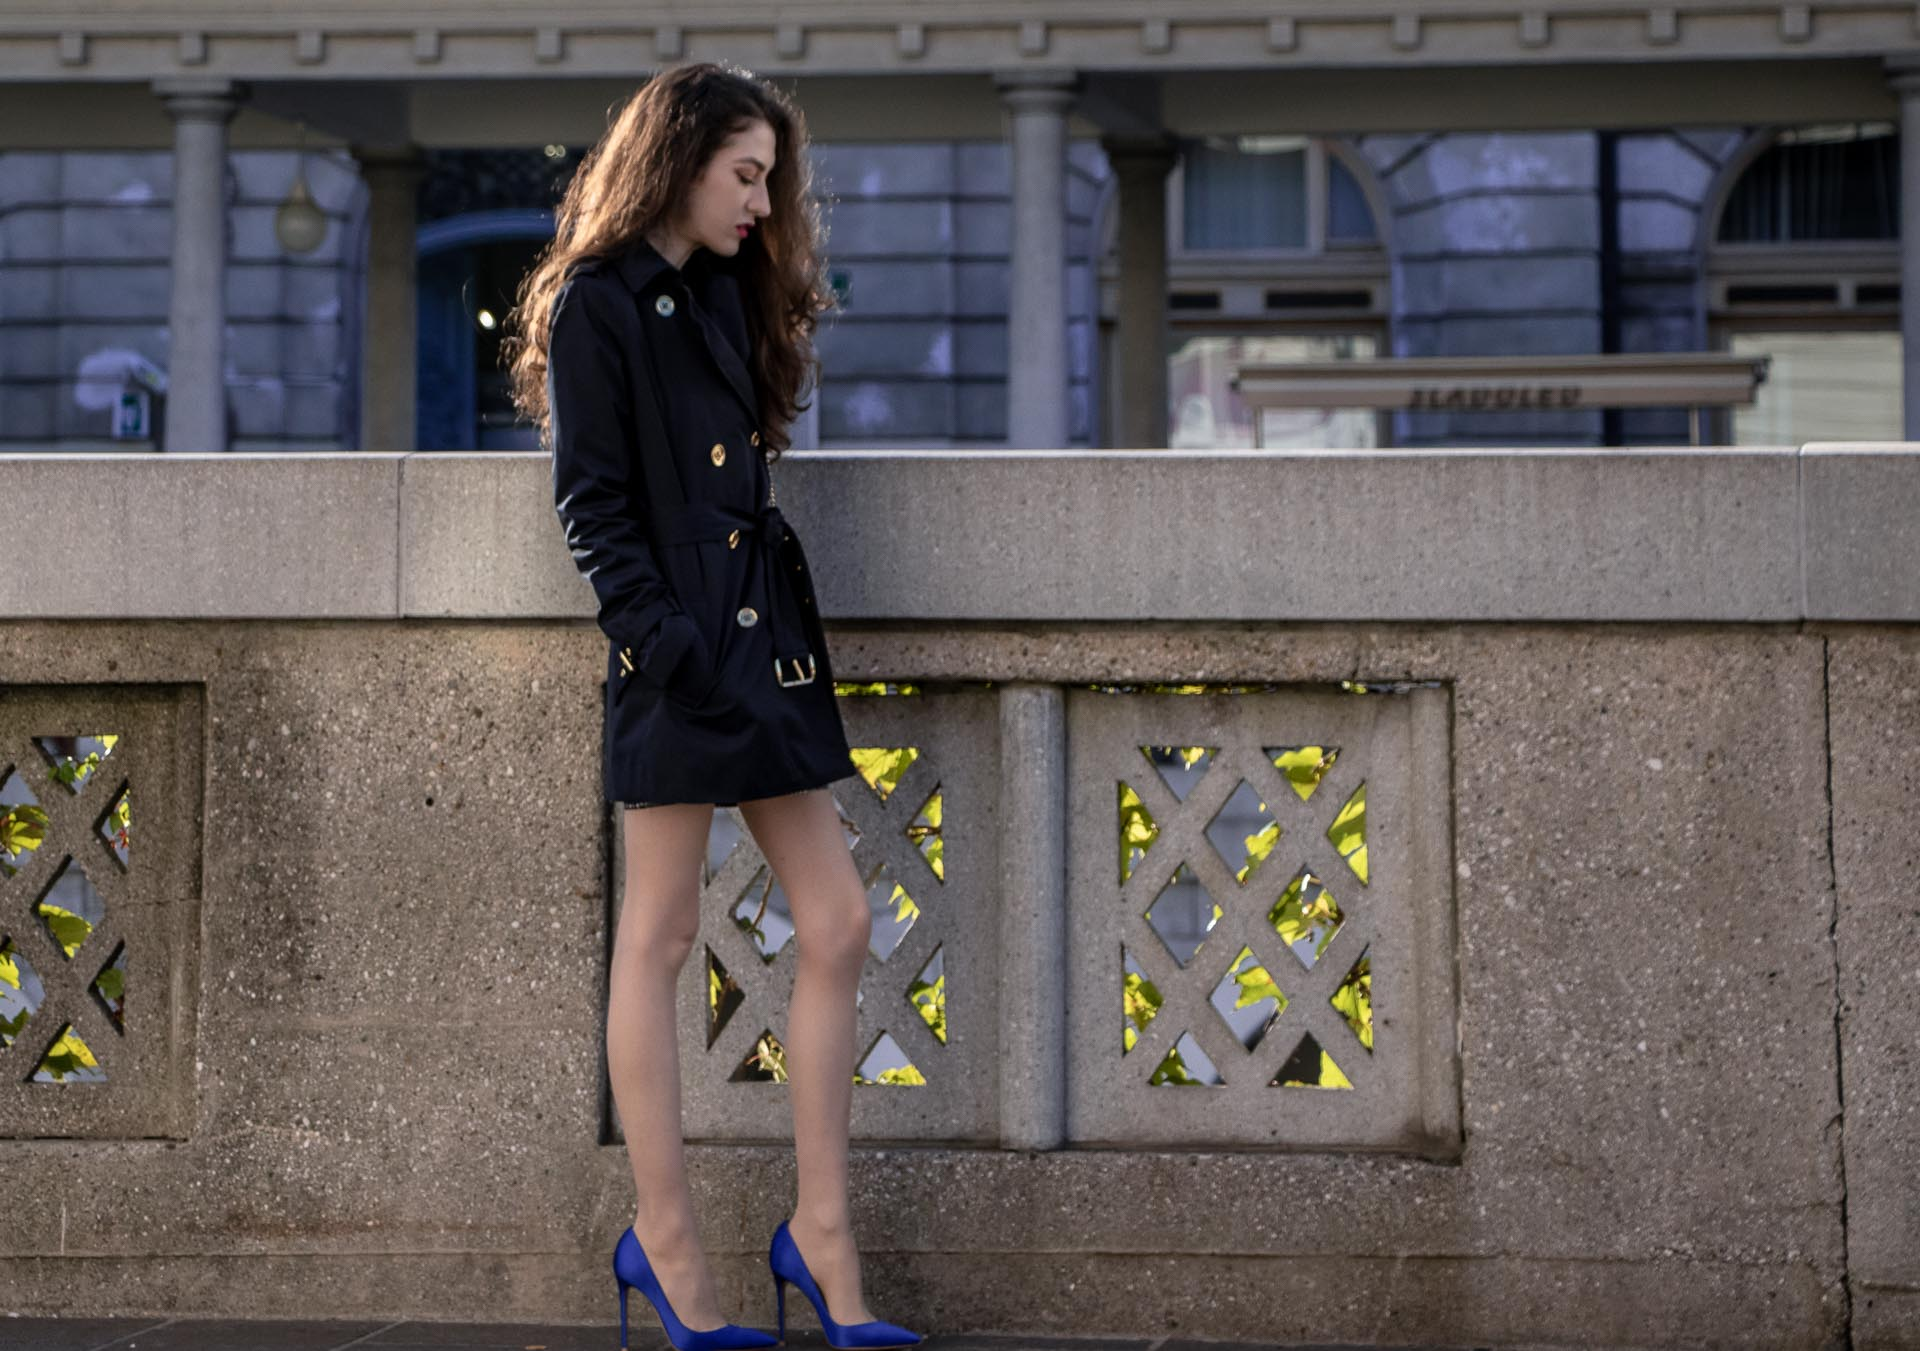 Beautiful Slovenian Fashion Blogger Veronika Lipar of Brunette from Wall wearing dark navy Michael Kors short trench coat, Gianvito Rossi blue satin court shoes, white chain shoulder bag walking home after clubbing